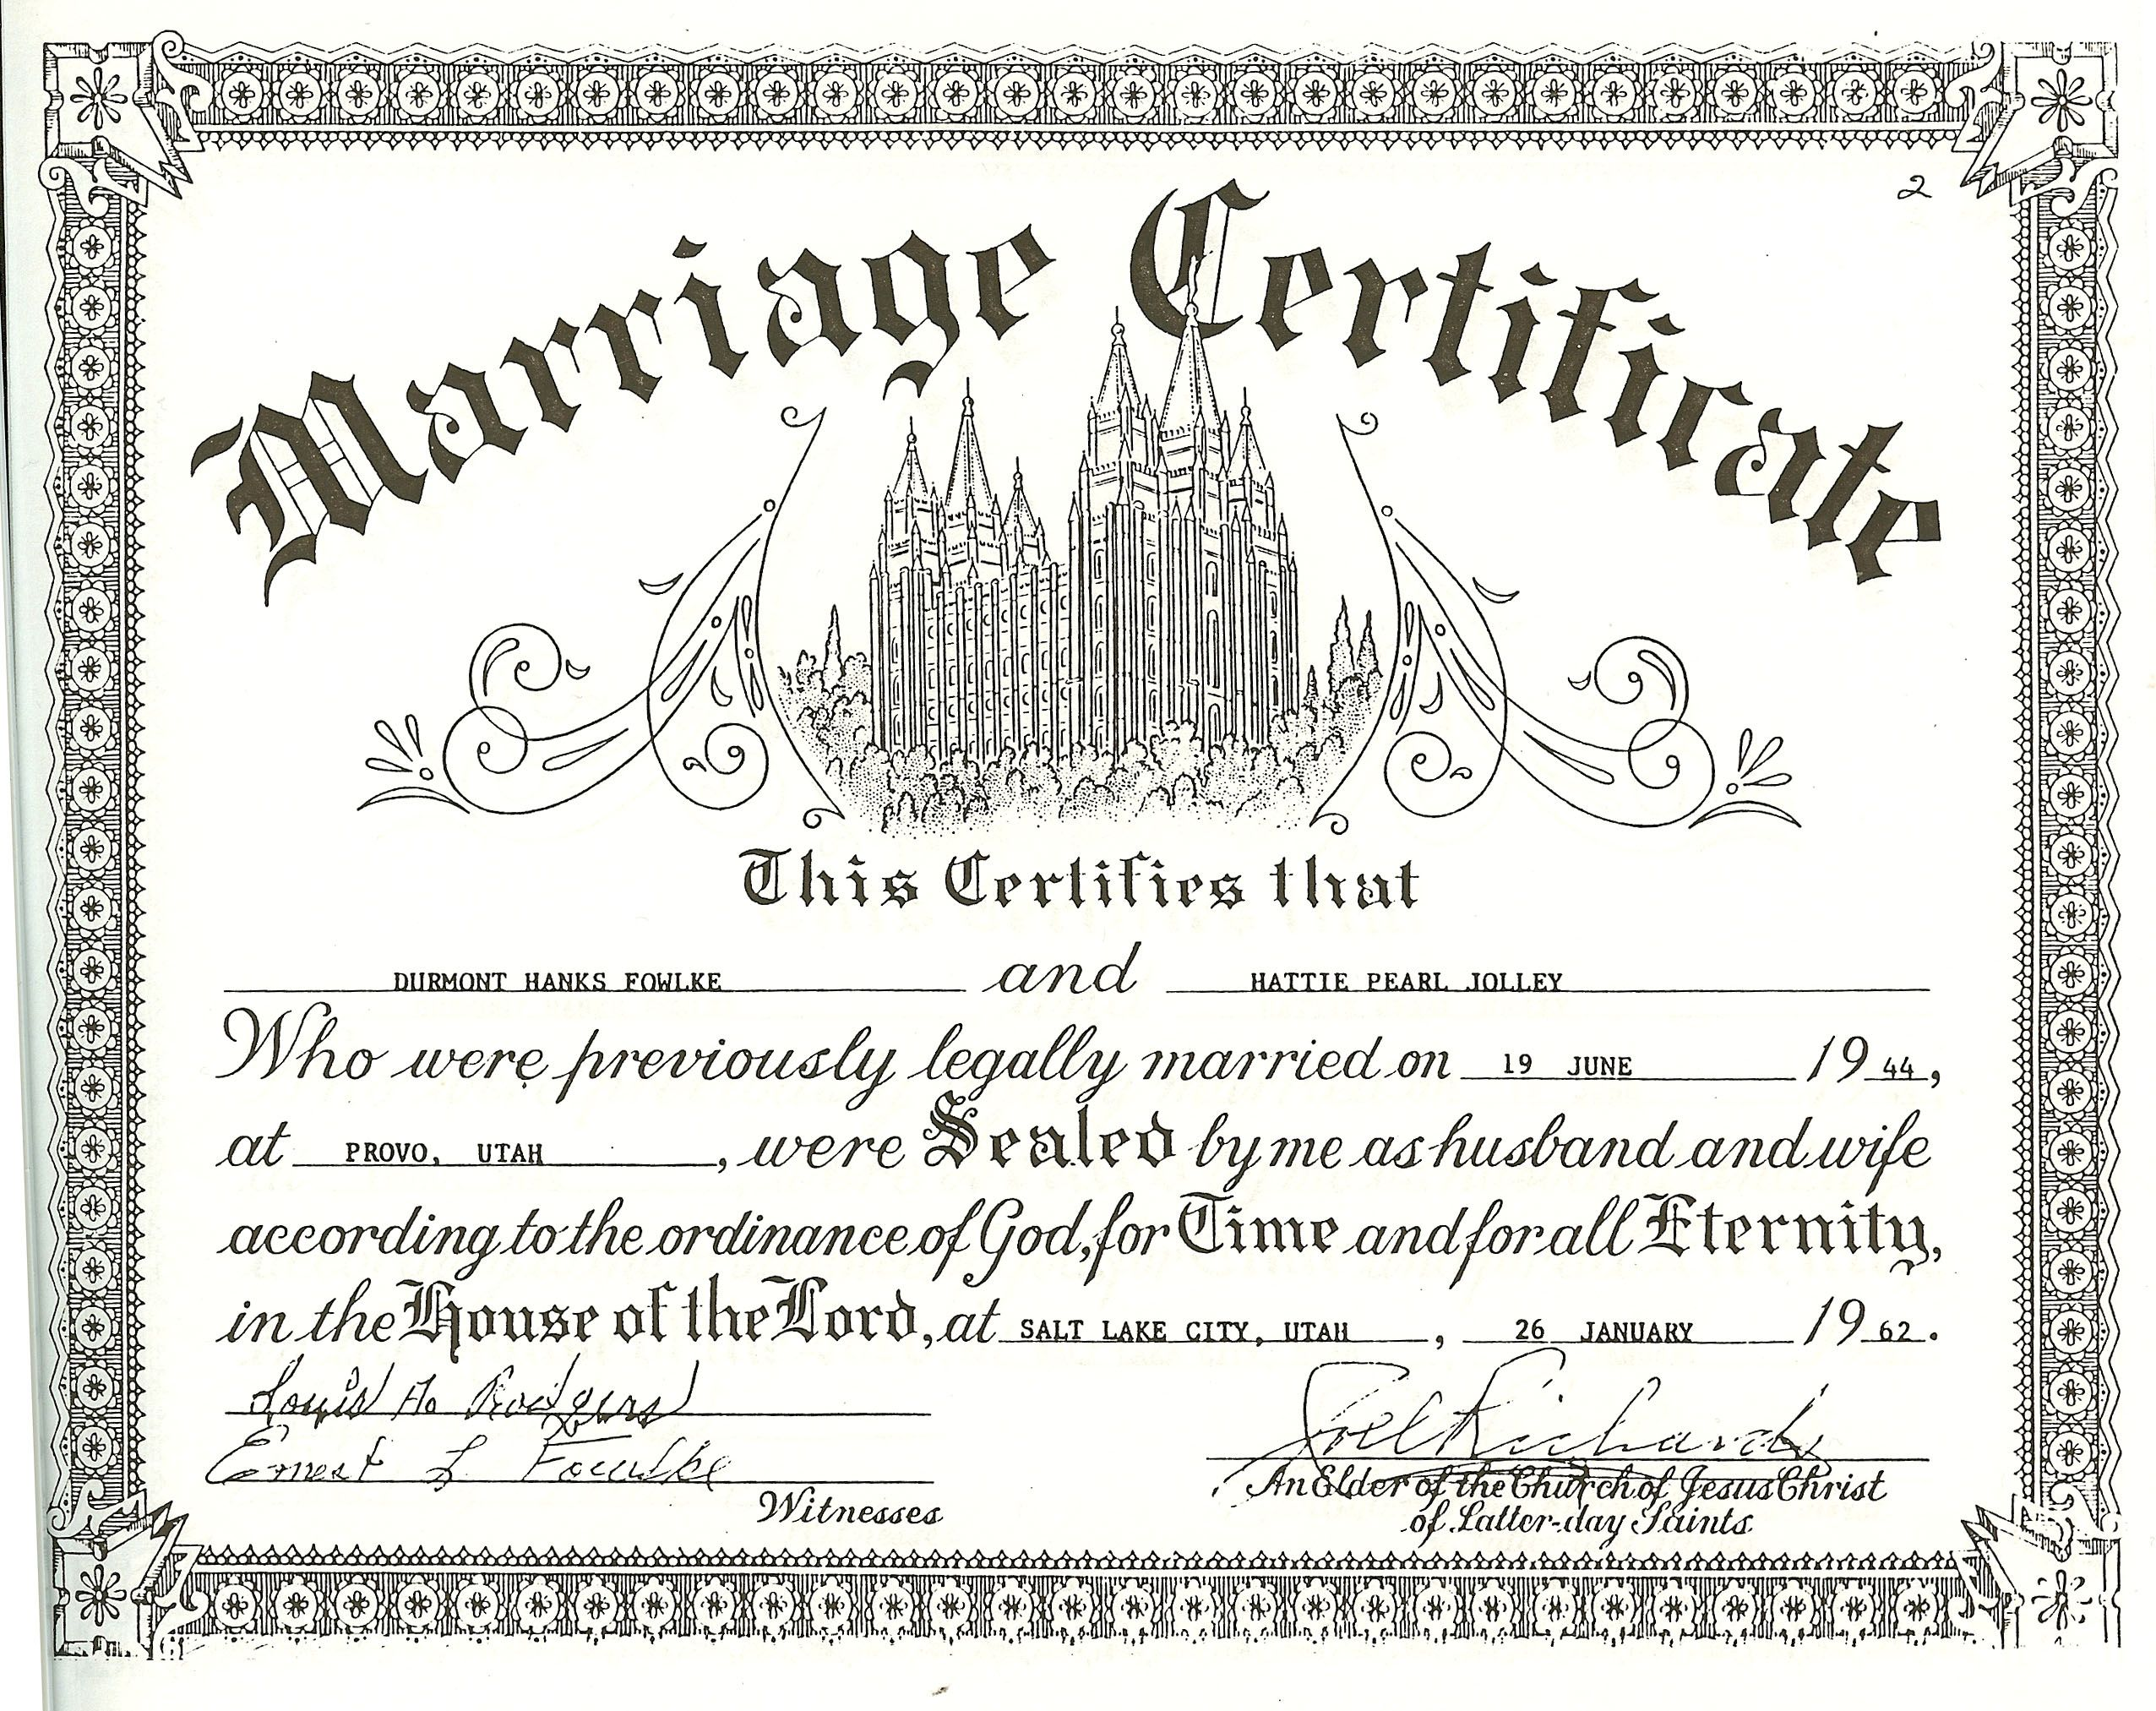 Wedding certificates free dh and pearl fowlke temple marriage wedding certificate yadclub Image collections